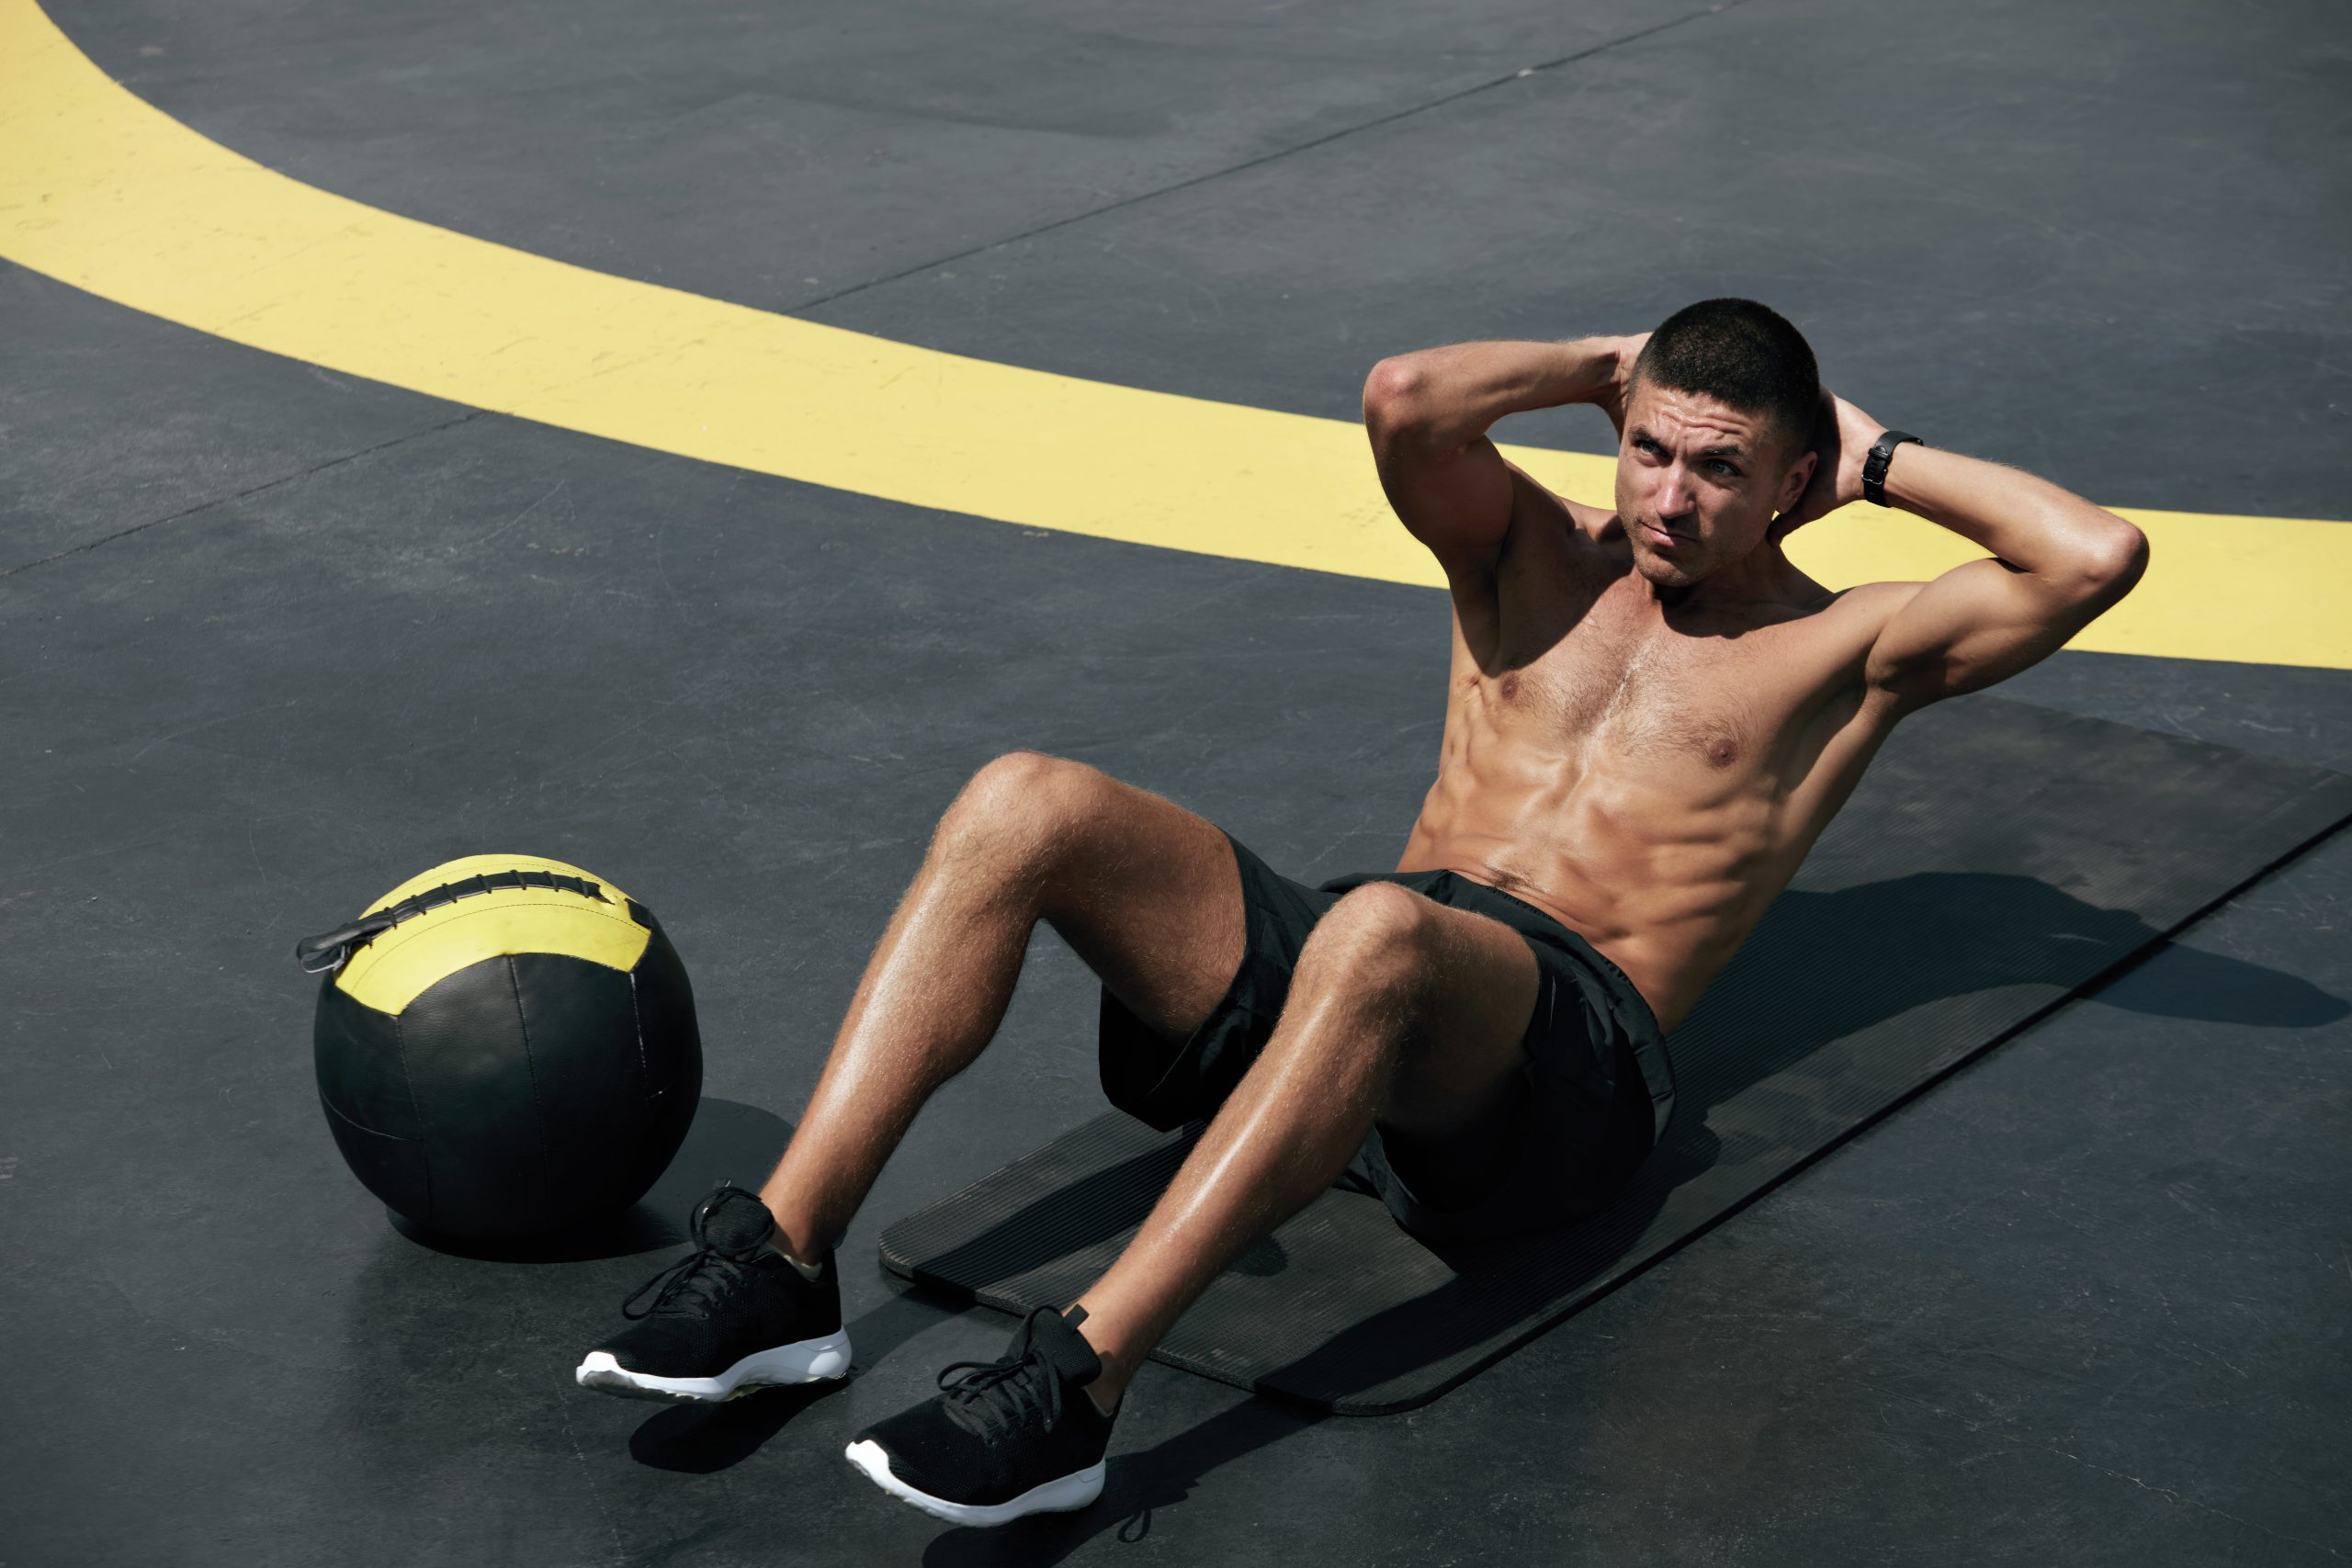 Man doing sit-ups with a black and yellow medicine ball beside him